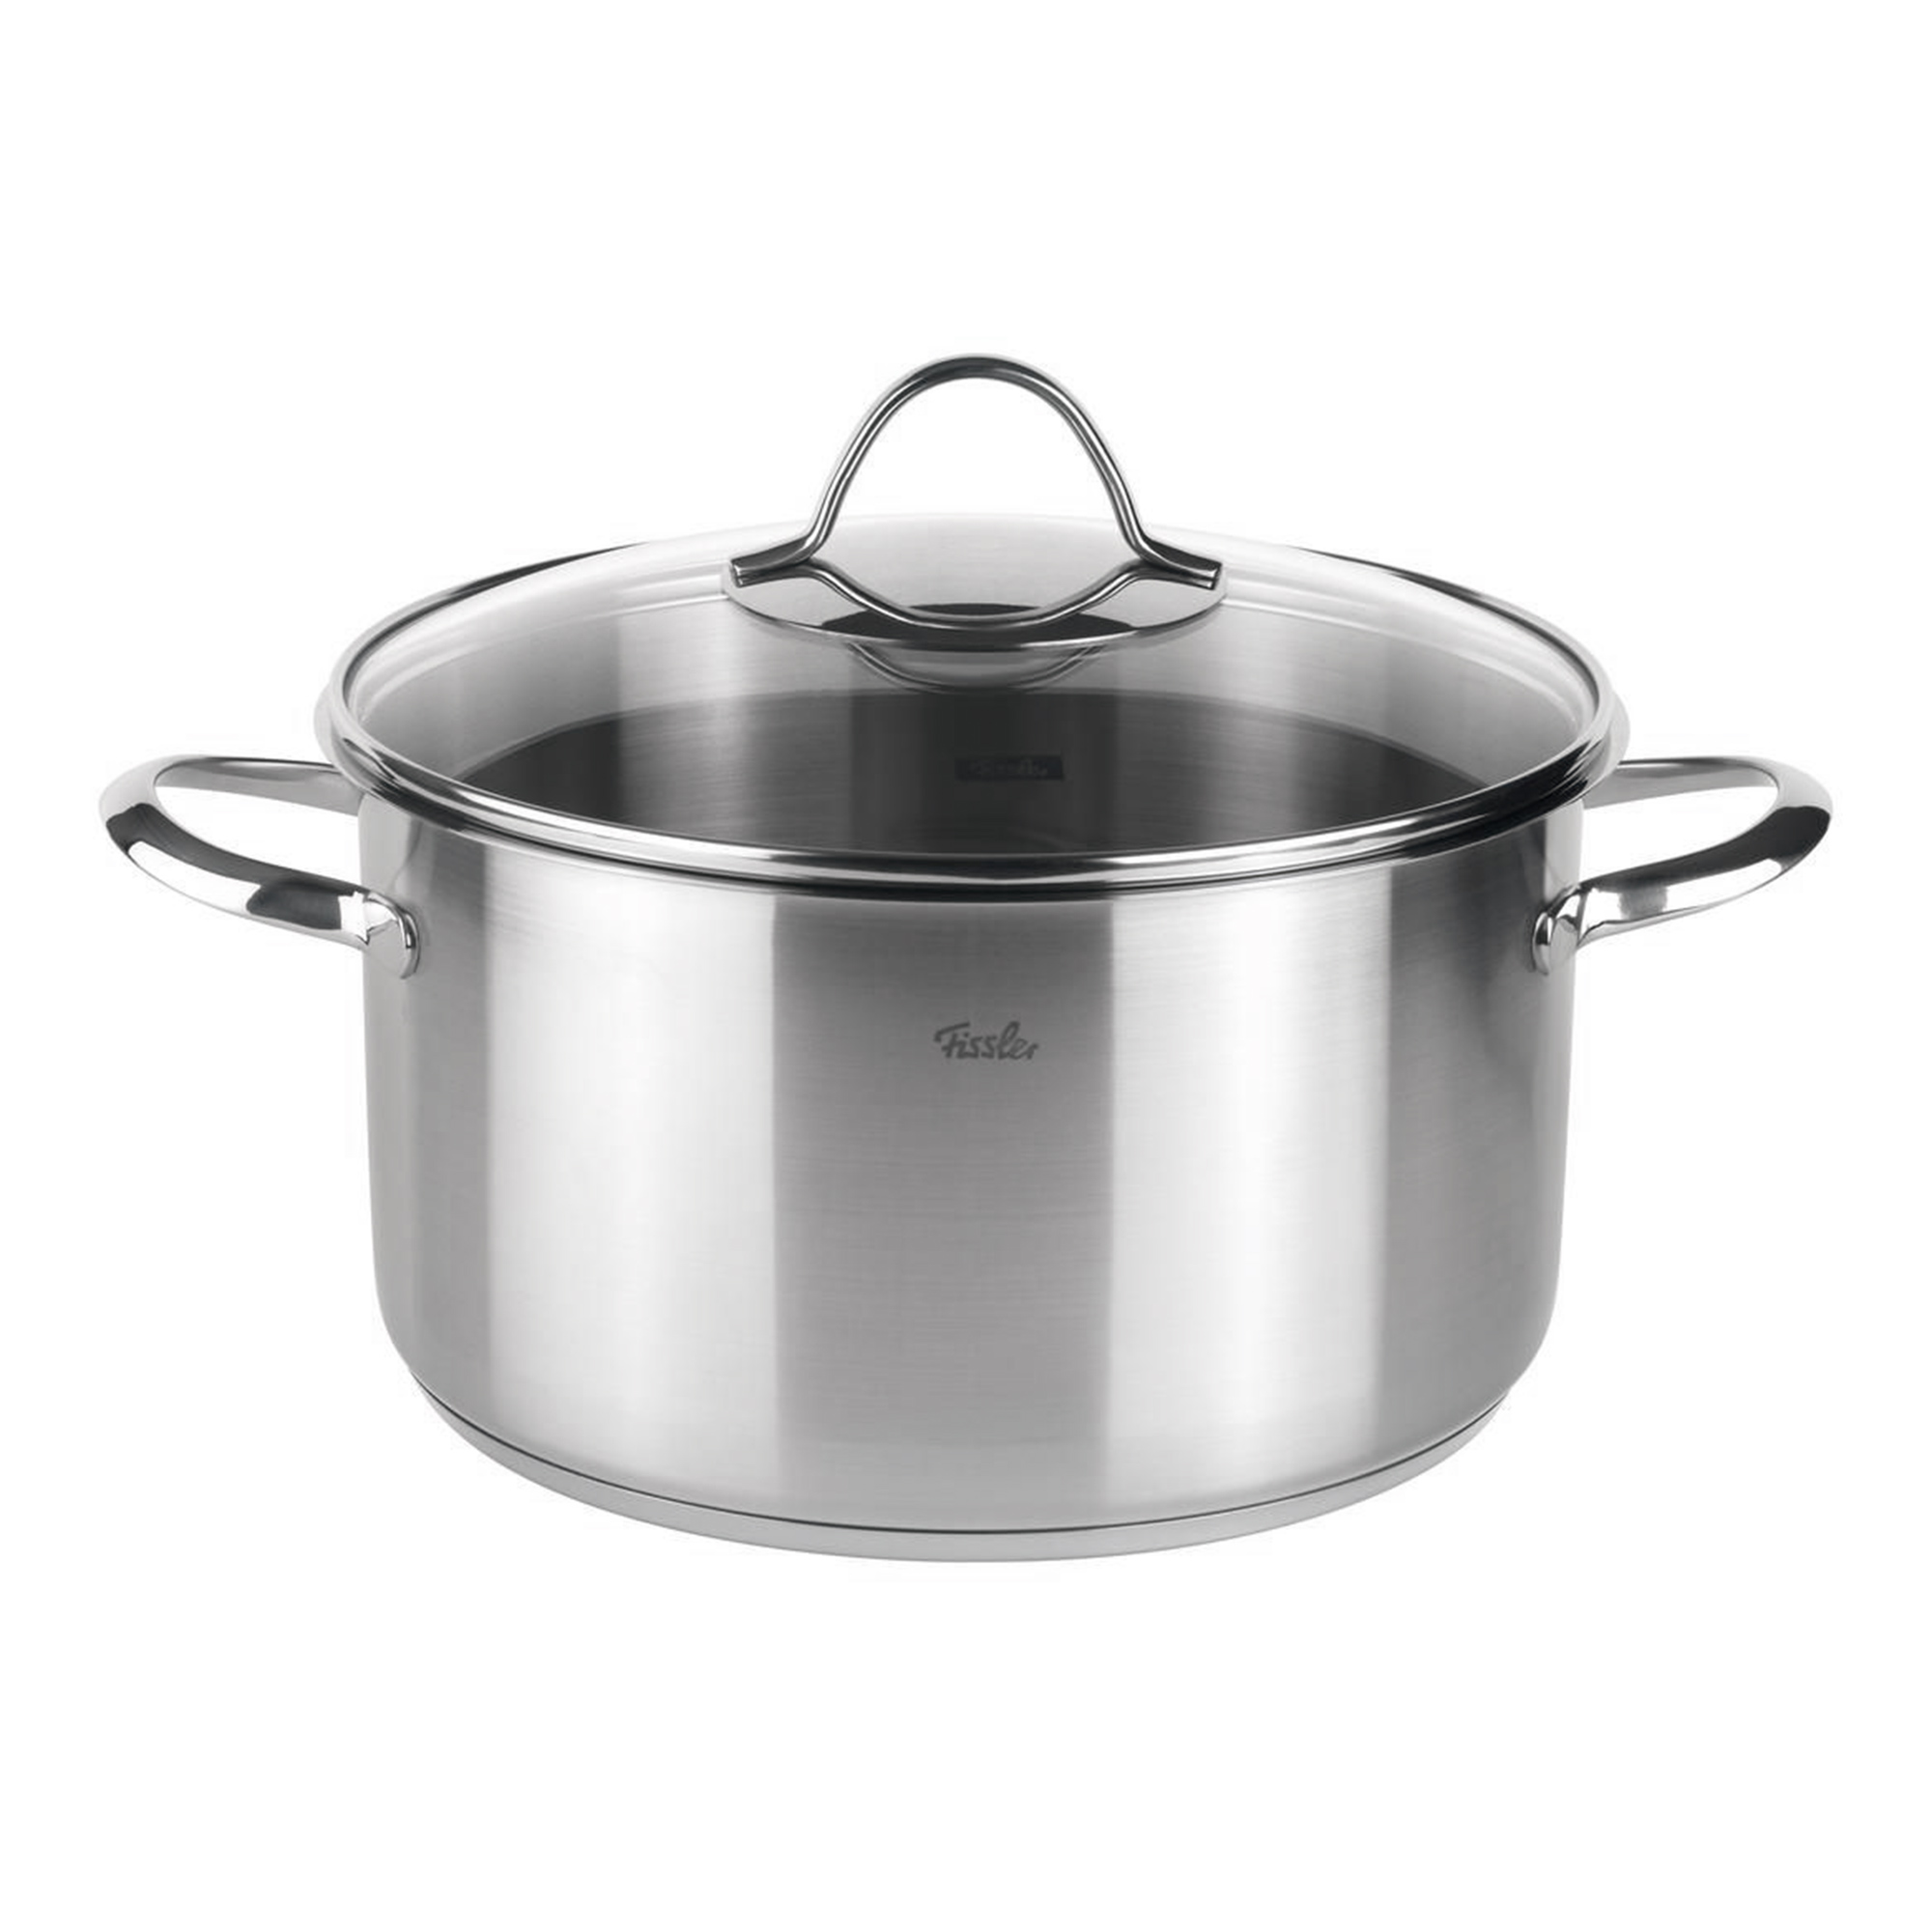 Кастрюля Fissler Paris 24 см 5,7 л кастрюля fissler valea 2 л